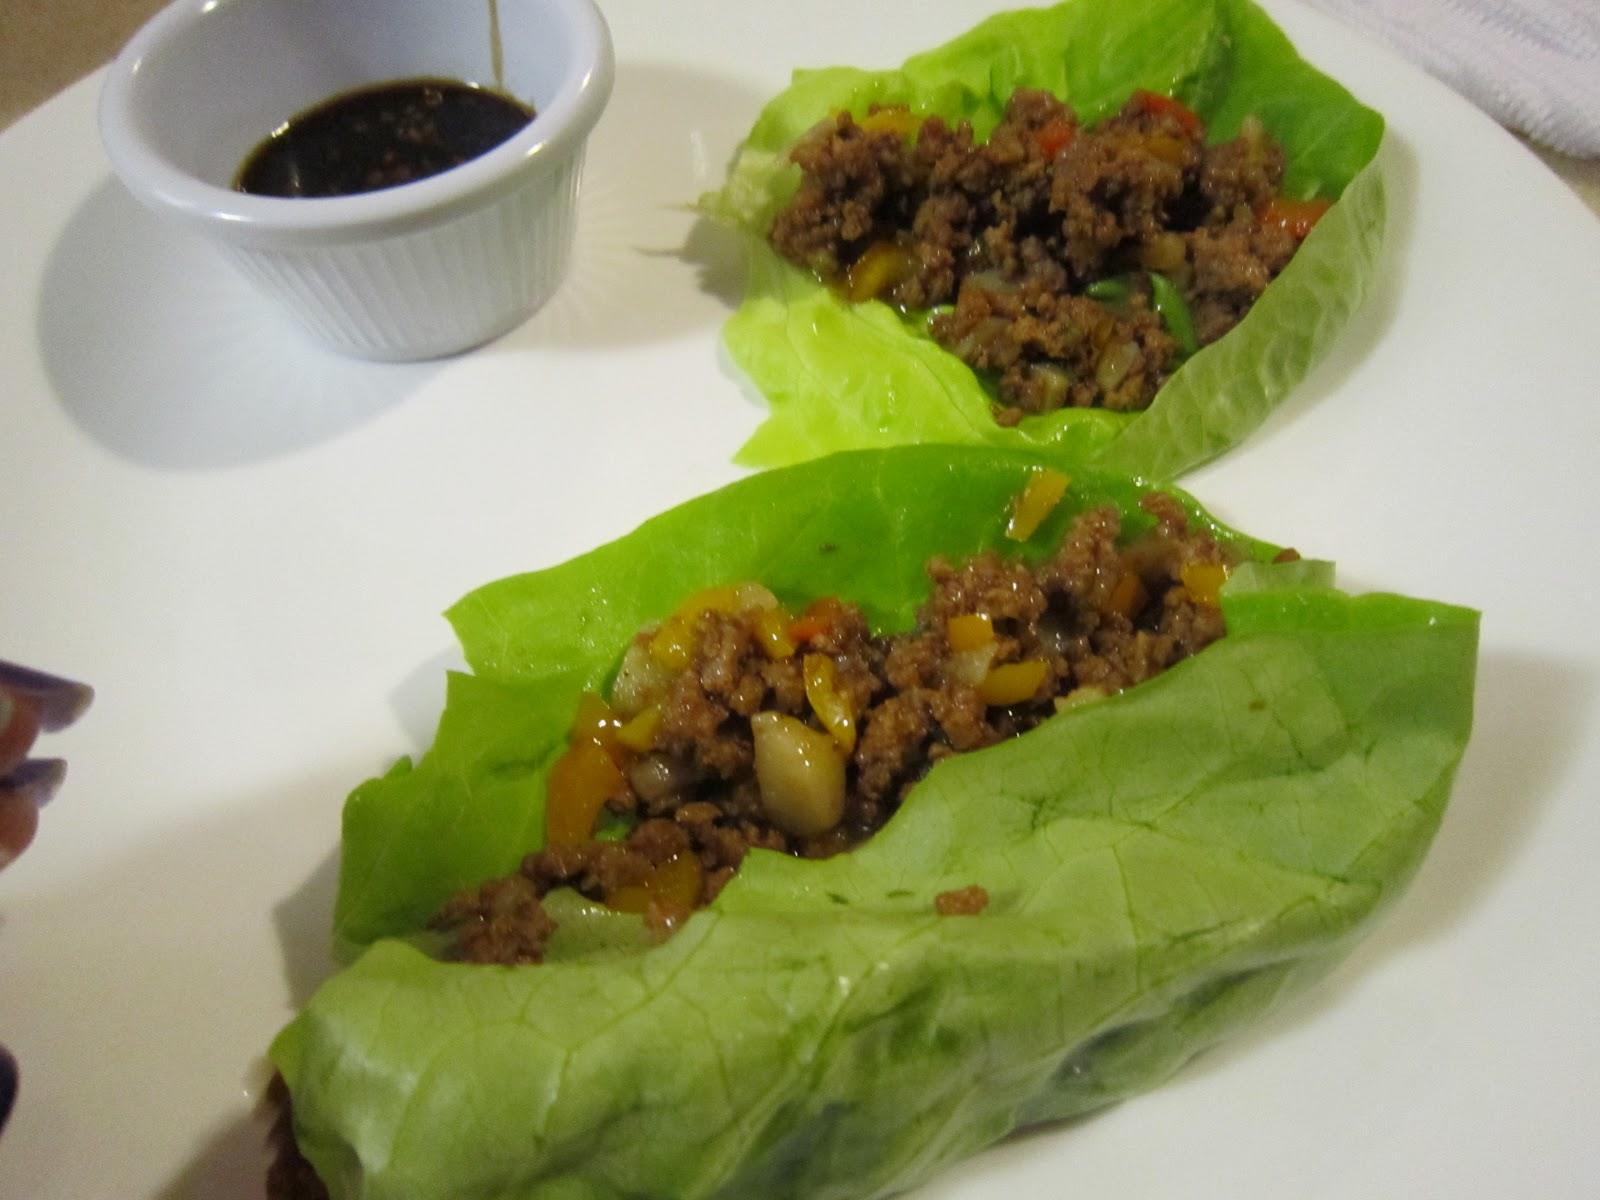 ... lettuce wraps chicken chicken lettuce wraps mini chicken lettuce wraps